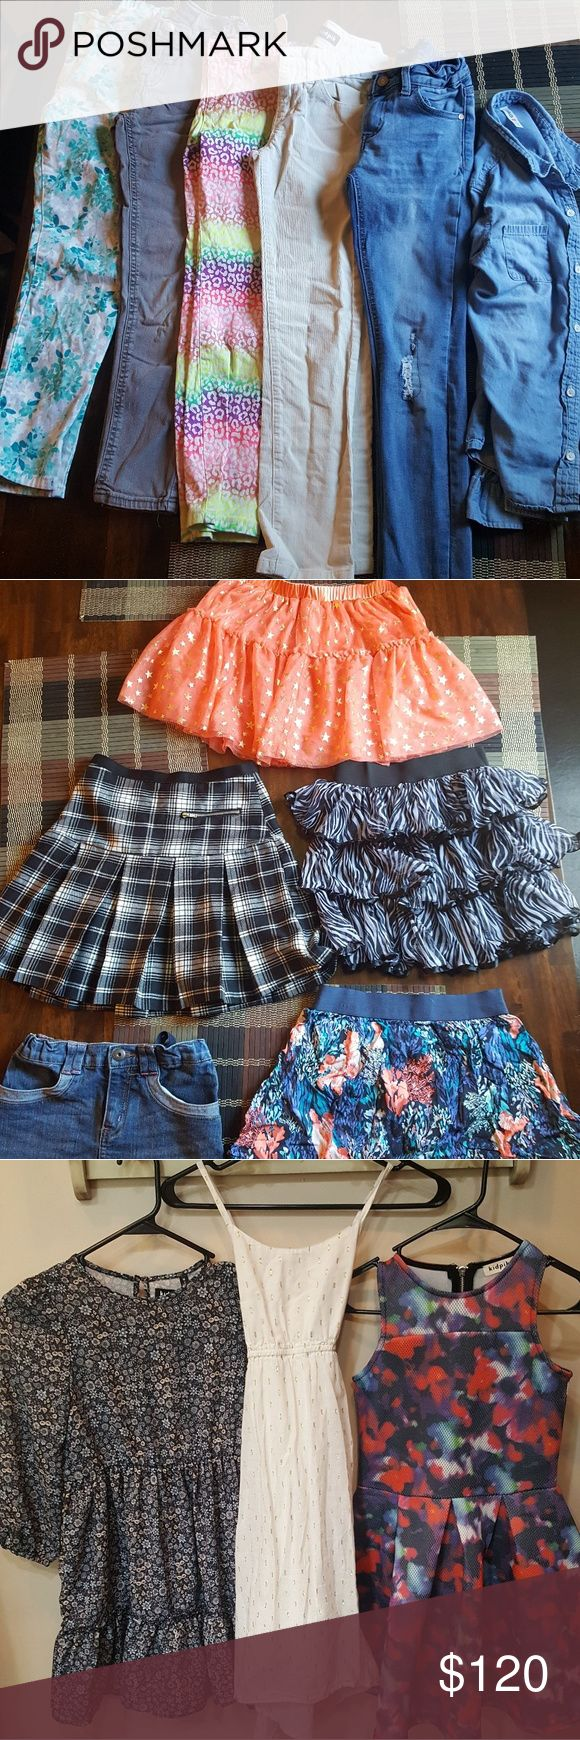 Girls 8/10 clothing Kidpik, fabkids, old navy, children's place, and crazy 8 brands Dresses Casual